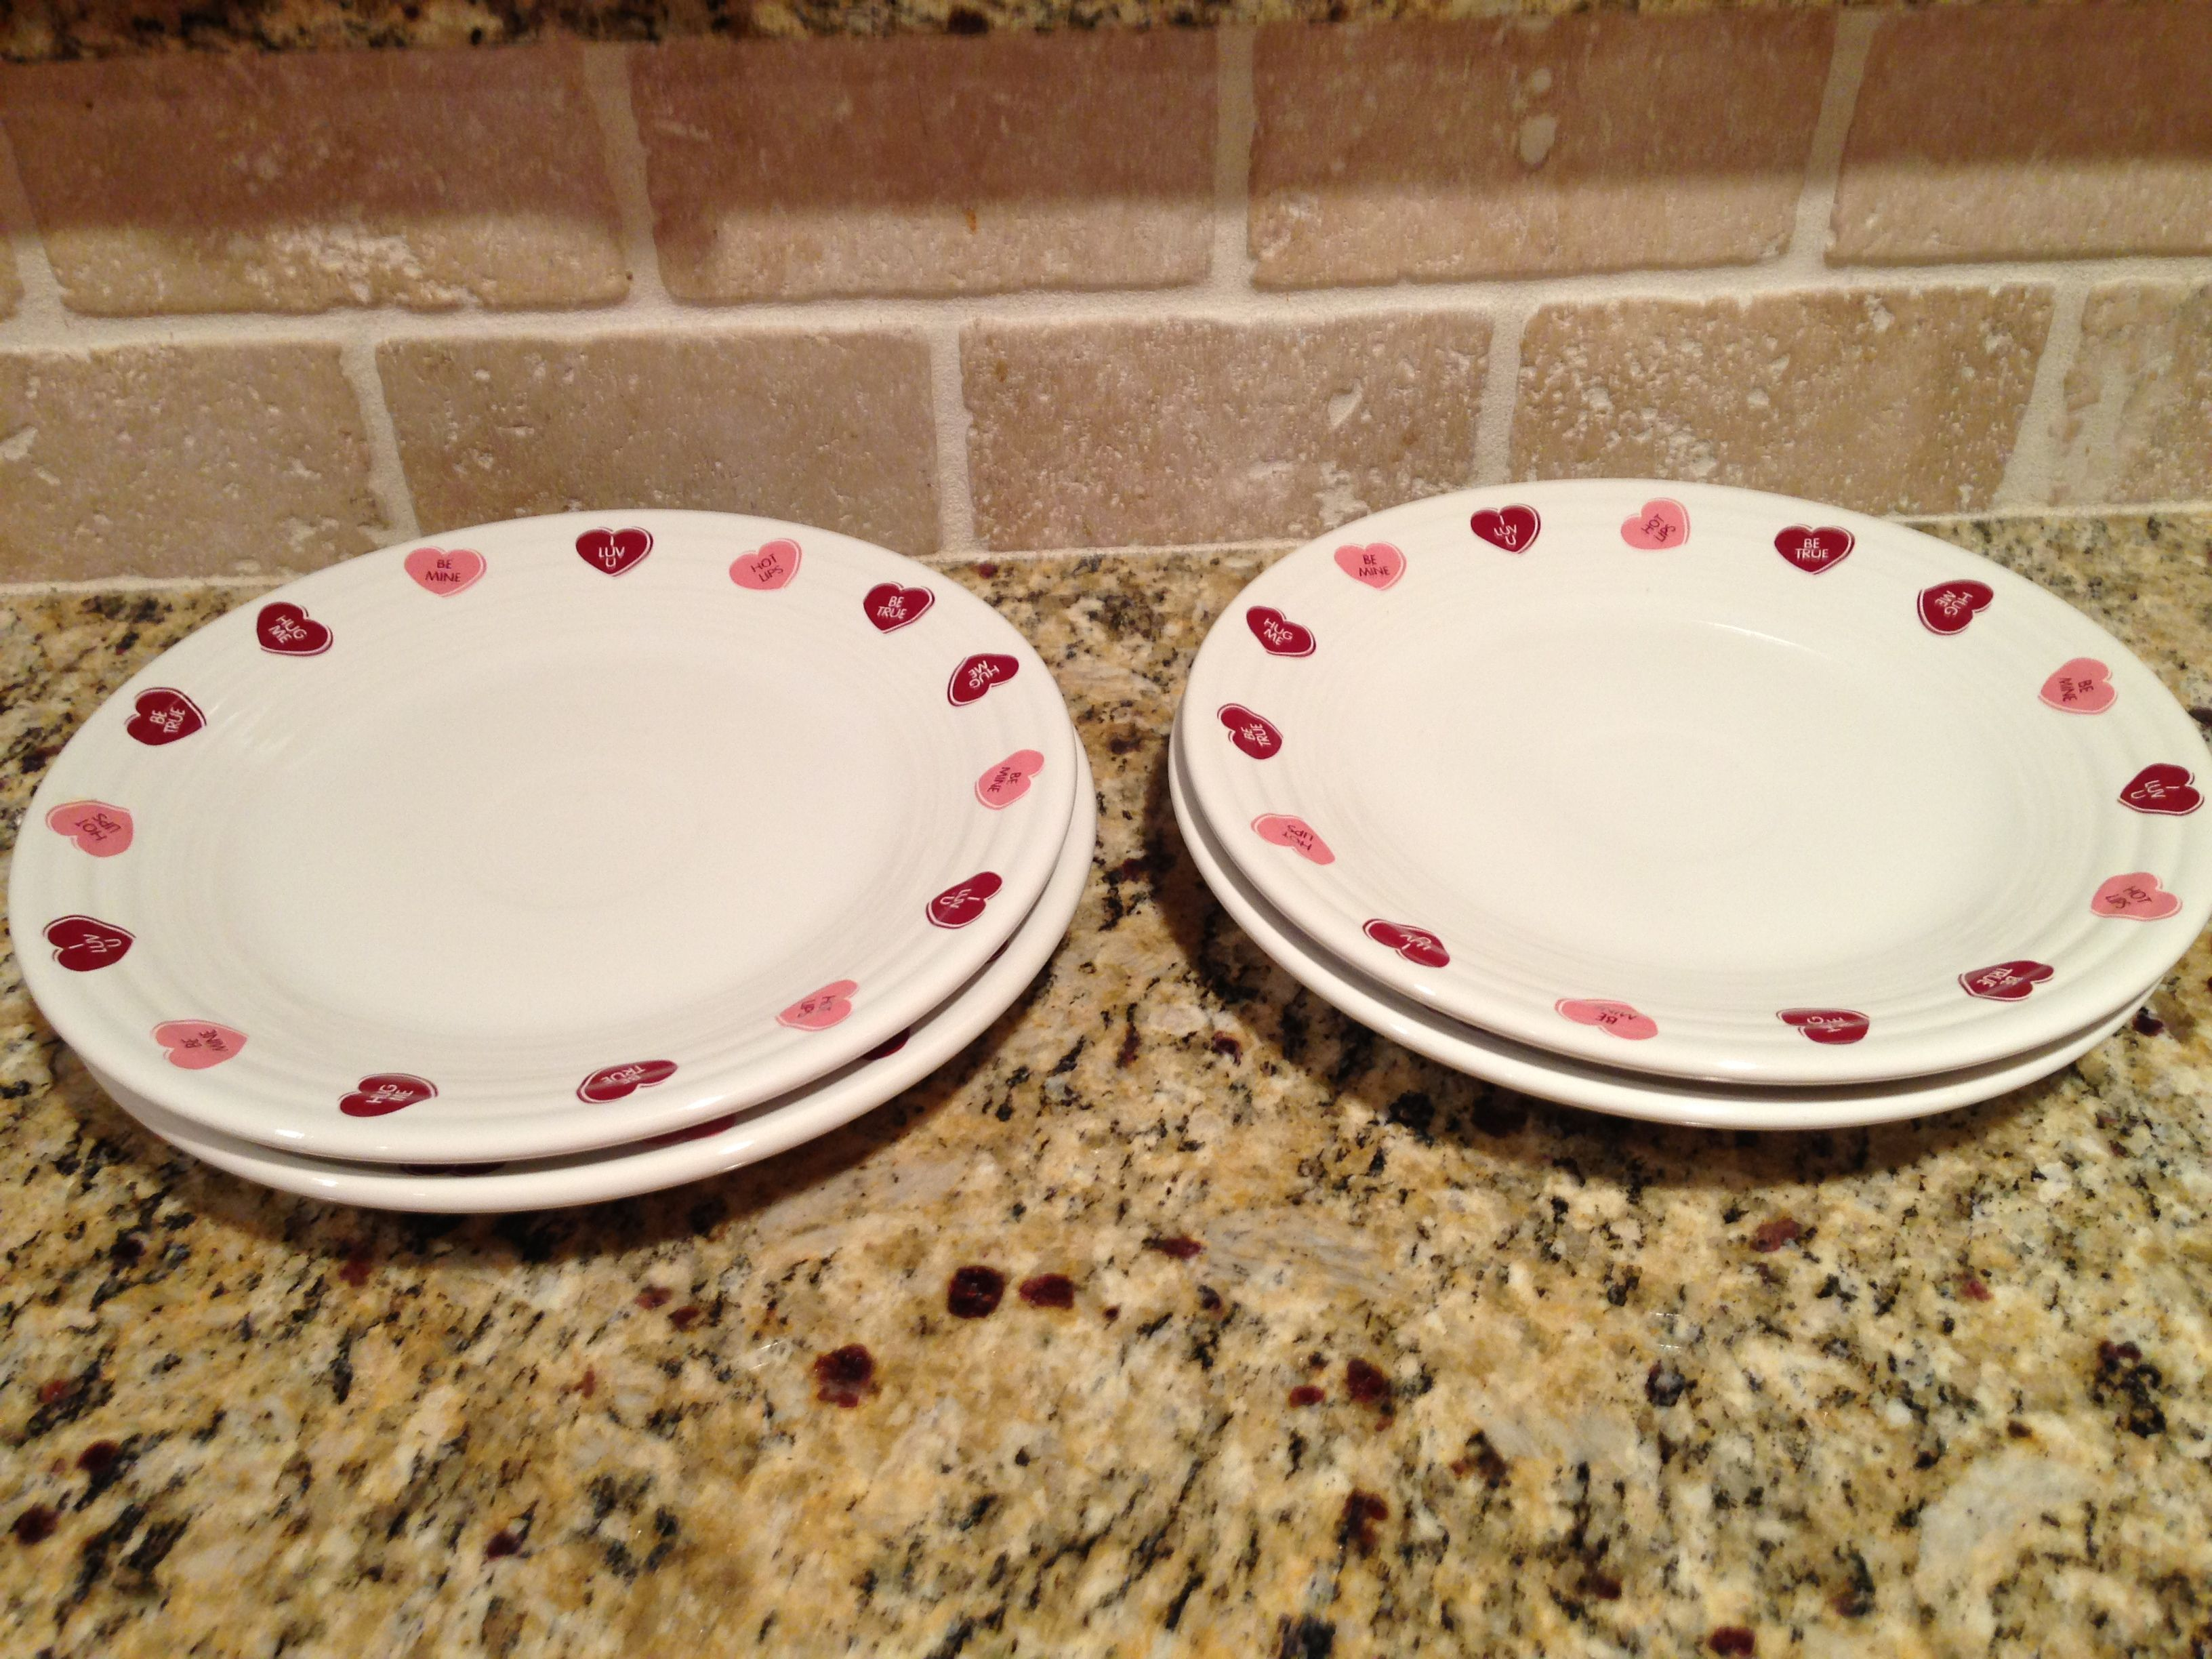 Our Valentine Hearts Fiesta luncheon plates! Dishes in